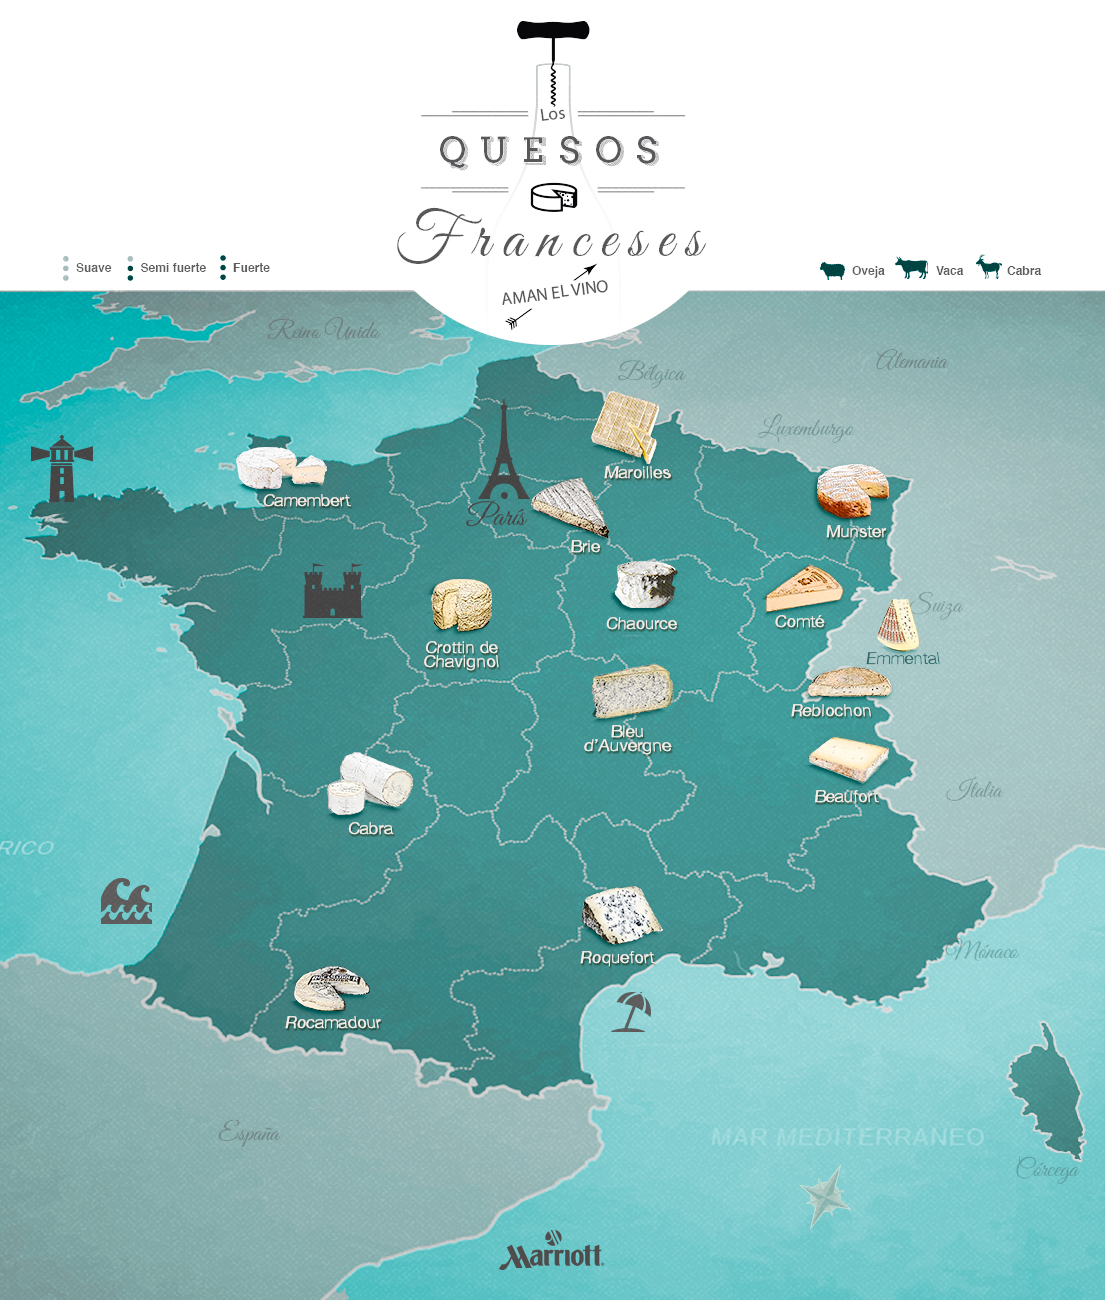 Los quesos franceses aman el vino thinglink for Guisos franceses